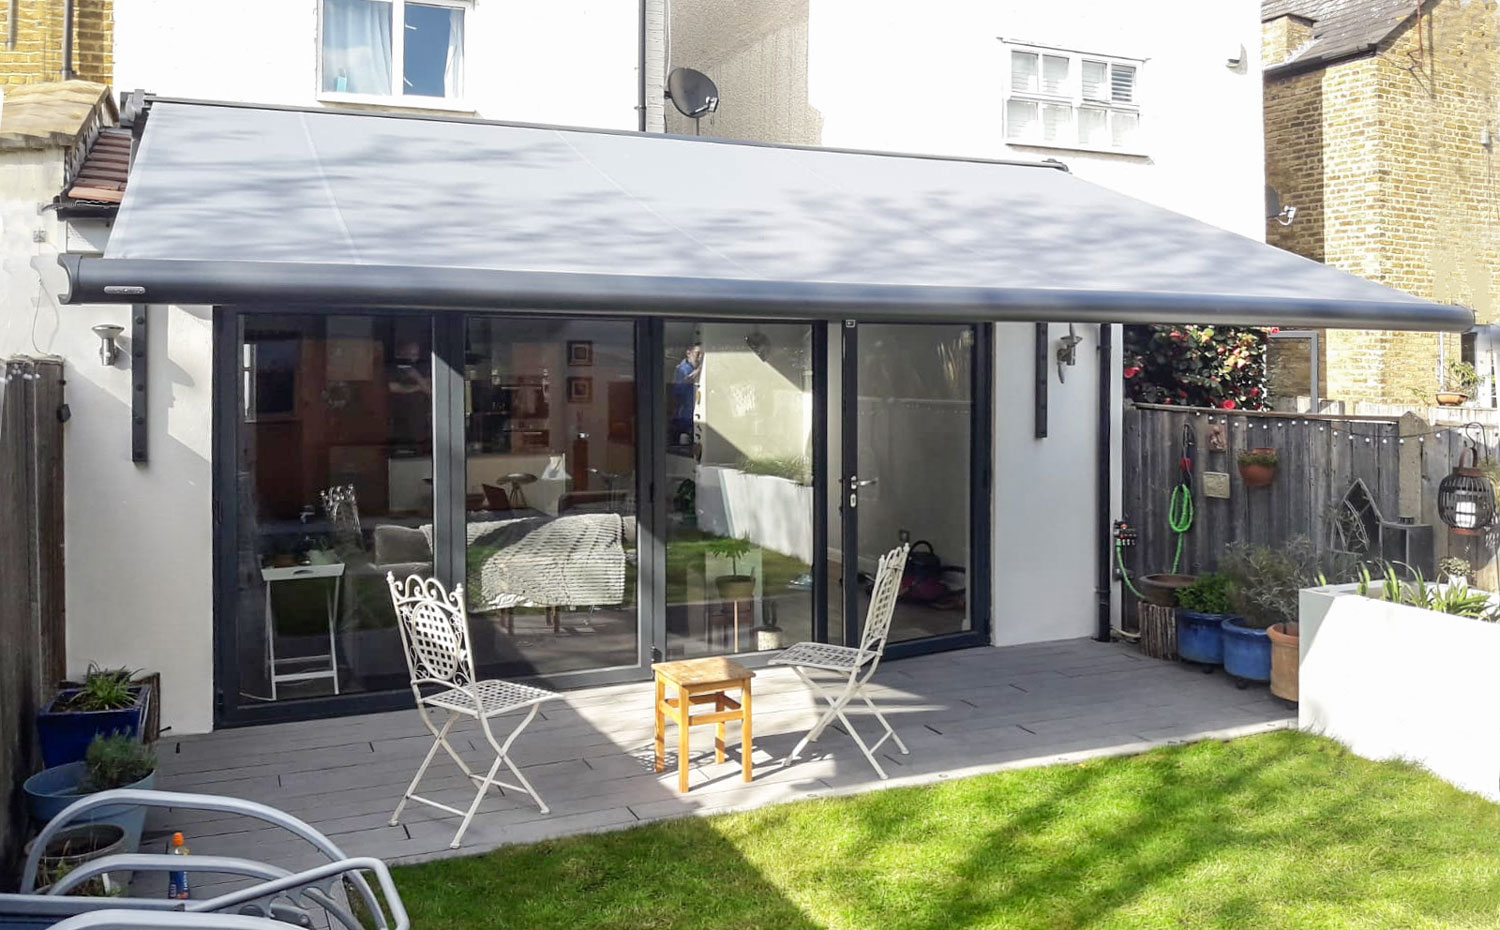 markilux 990 awning installed in